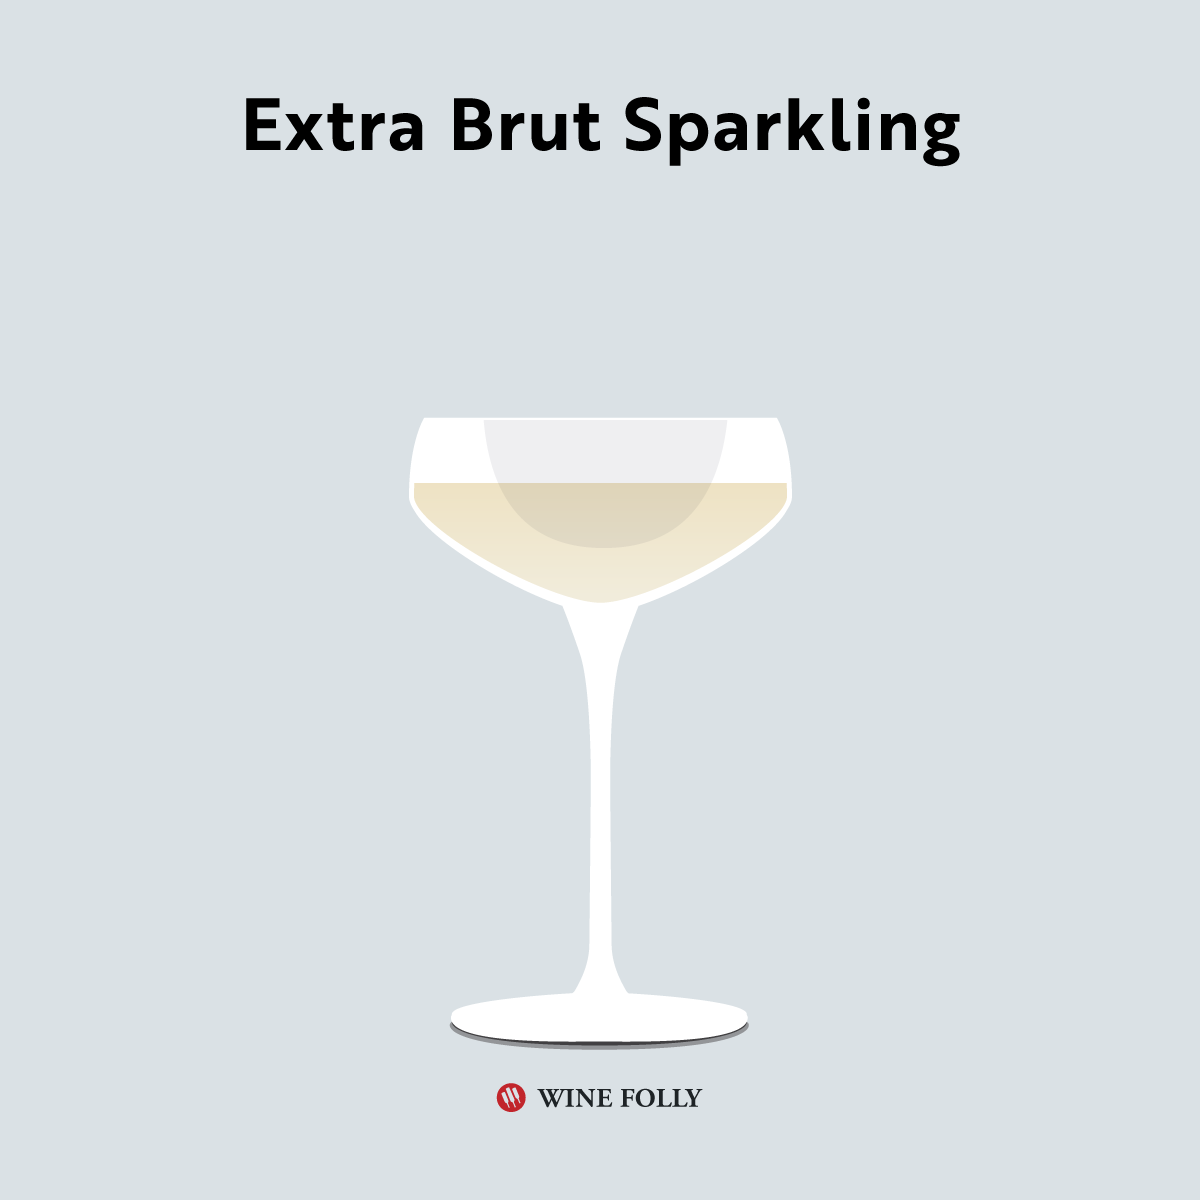 Illustration of a Champagne coupe glass with extra brut sparkling wine by Wine Folly